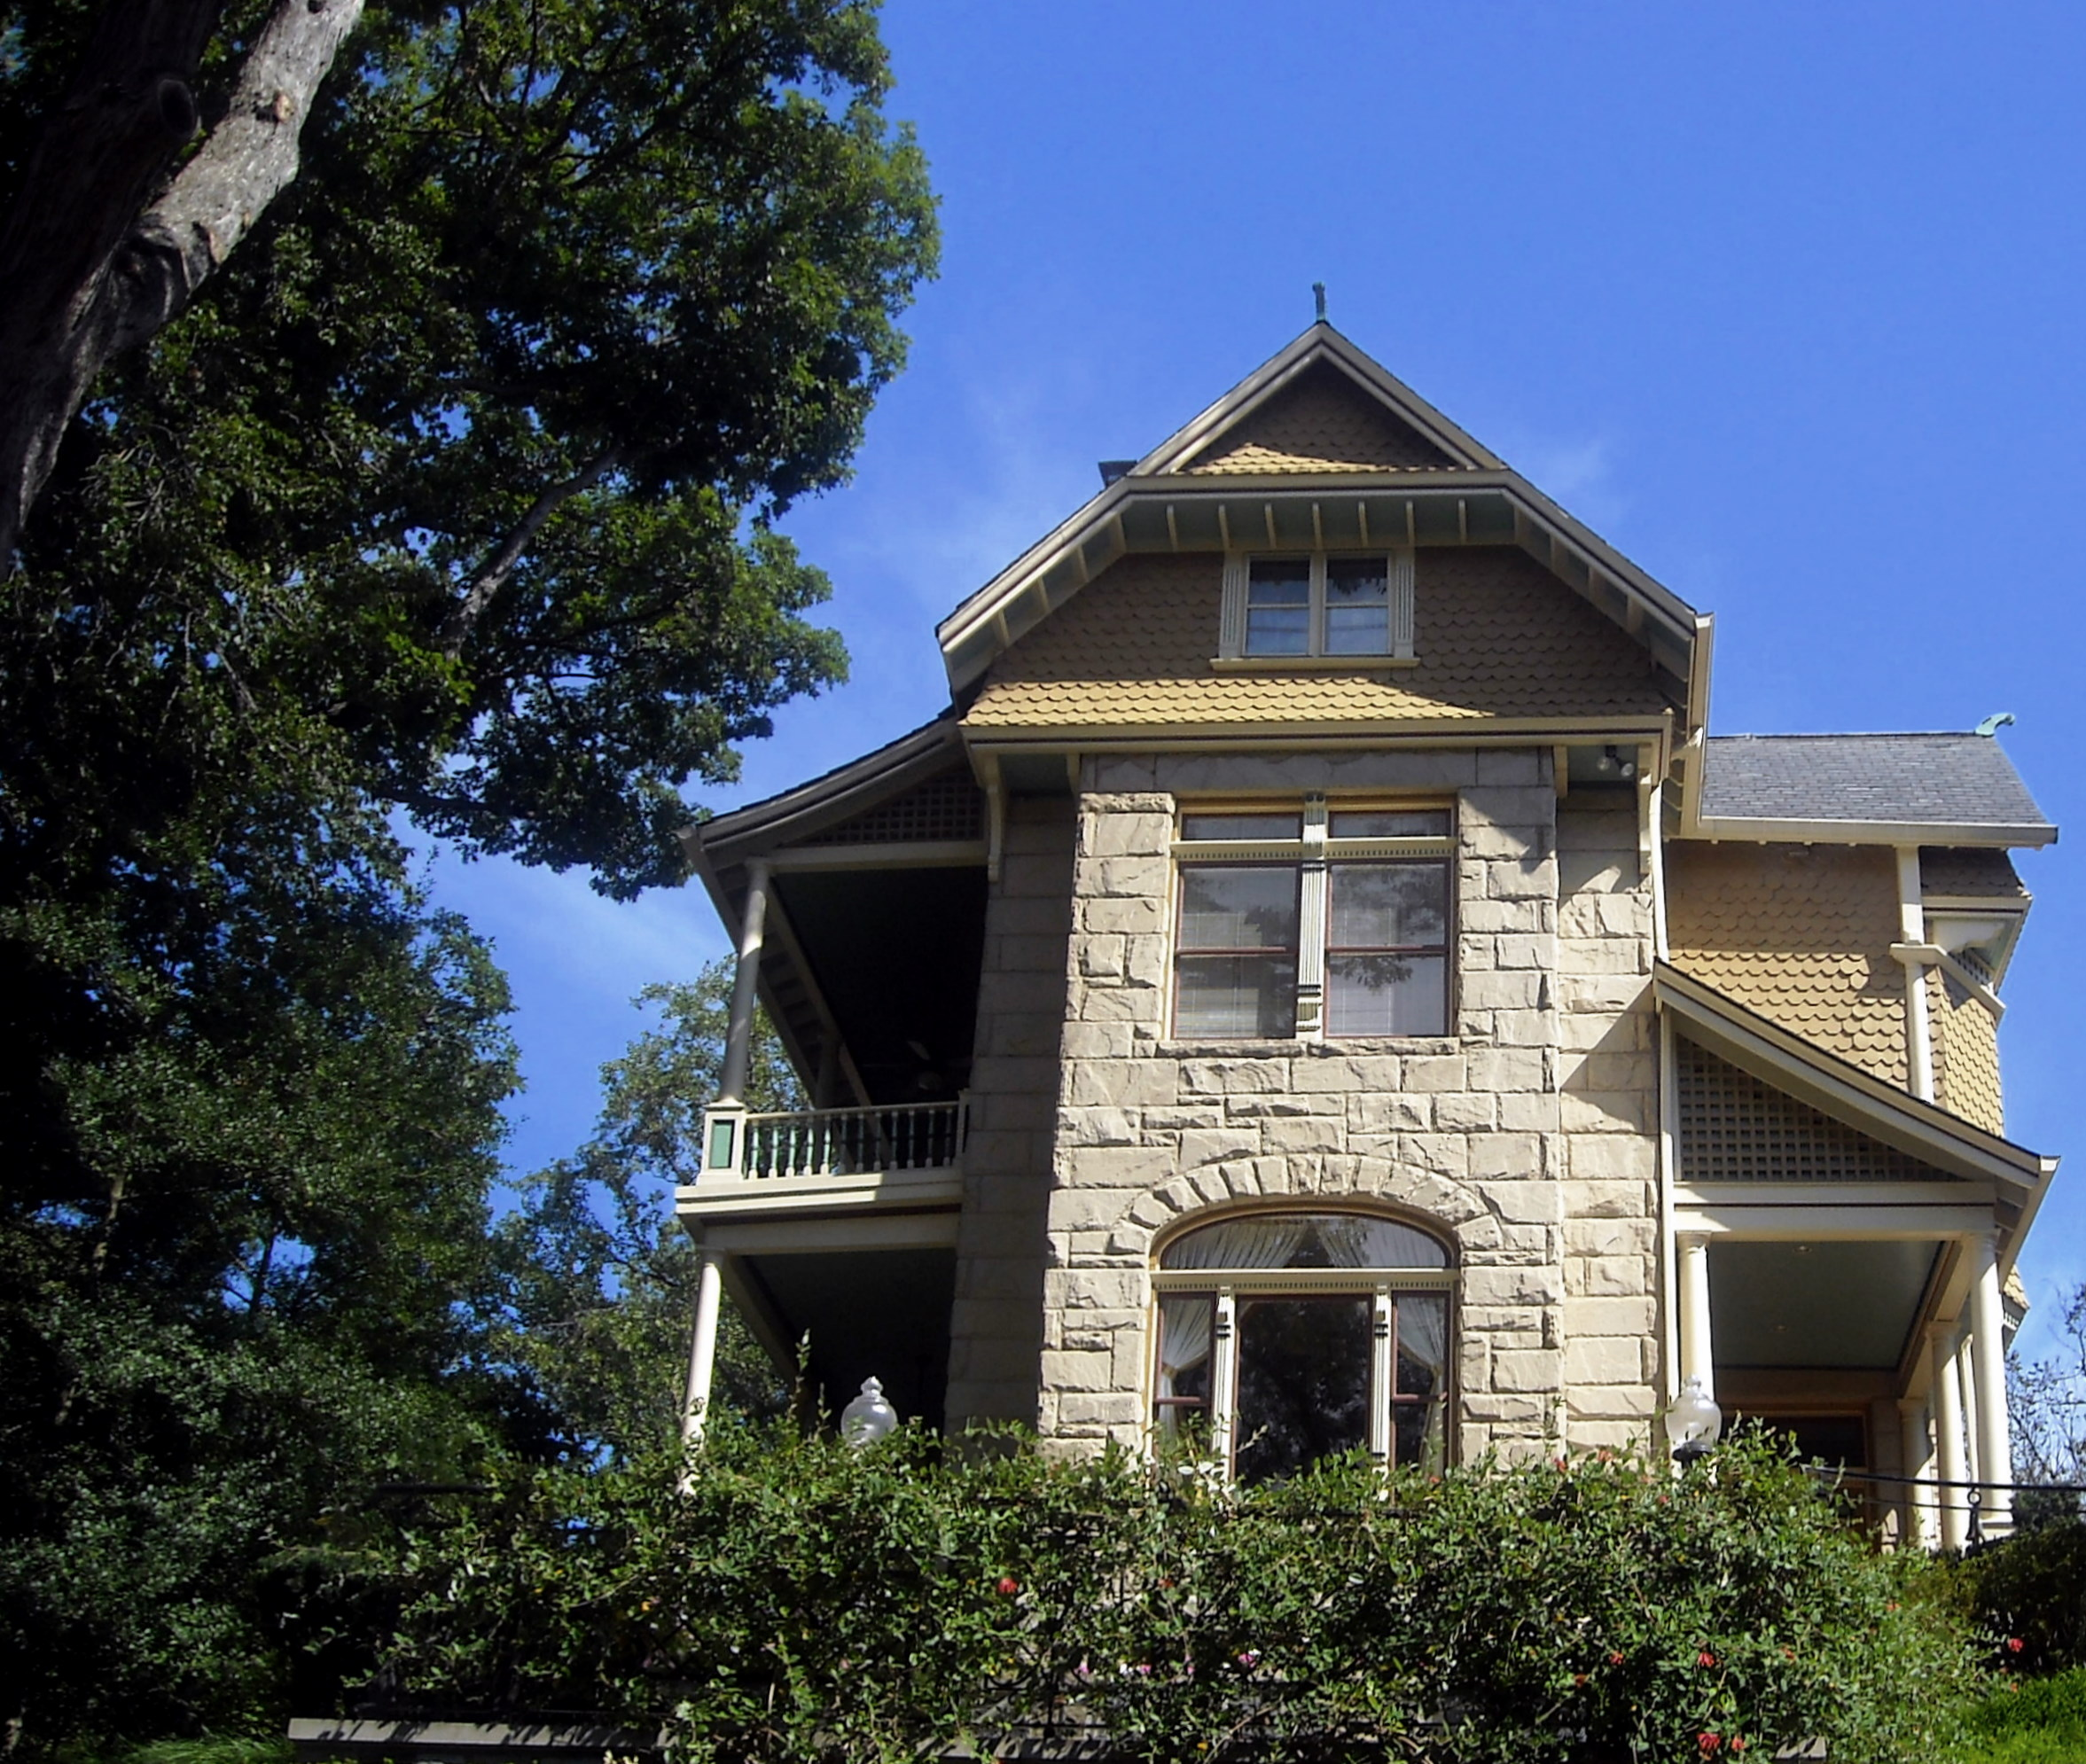 A view of the home in 2008 ((By AgnosticPreachersKid (Own work) [CC BY-SA 3.0 (http://creativecommons.org/licenses/by-sa/3.0) or GFDL (http://www.gnu.org/copyleft/fdl.html)], via Wikimedia Commons))